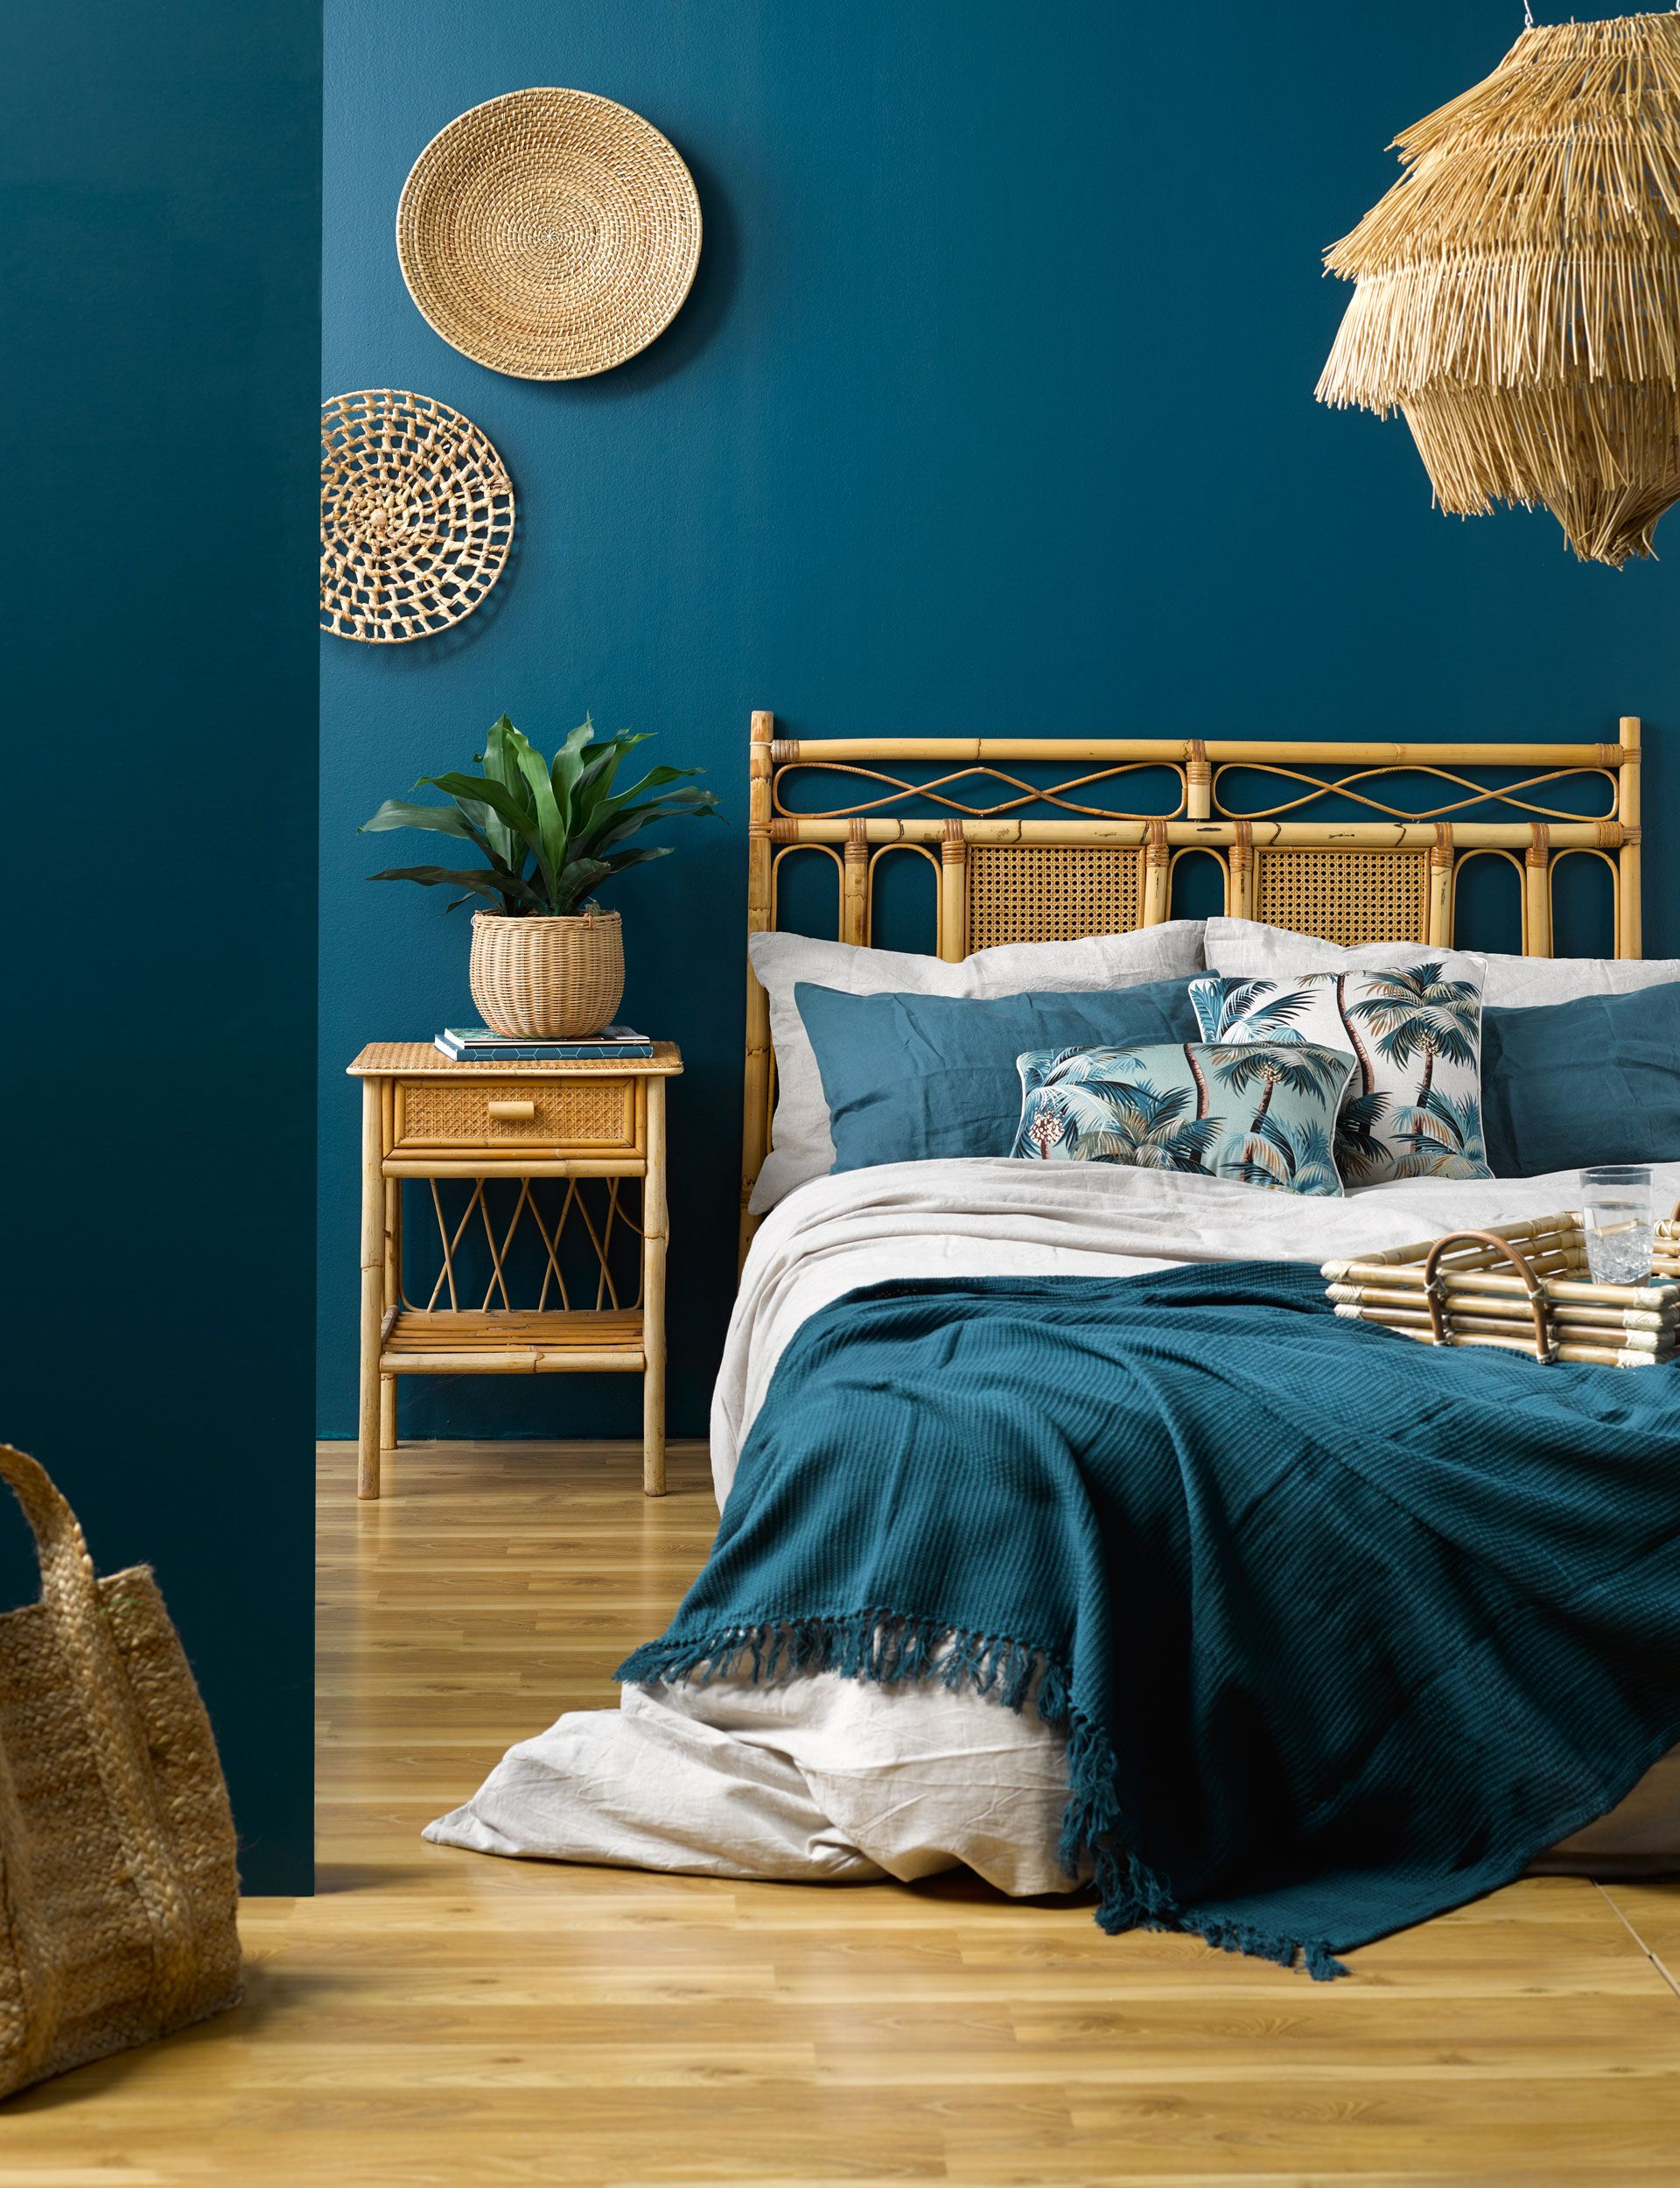 3 Ways You Can Add Laid Back Tropical Style To Your Bedroom Bedroom Color Combination Tropical Bedroom Decor Tropical Home Decor Ideas for teal bedroom